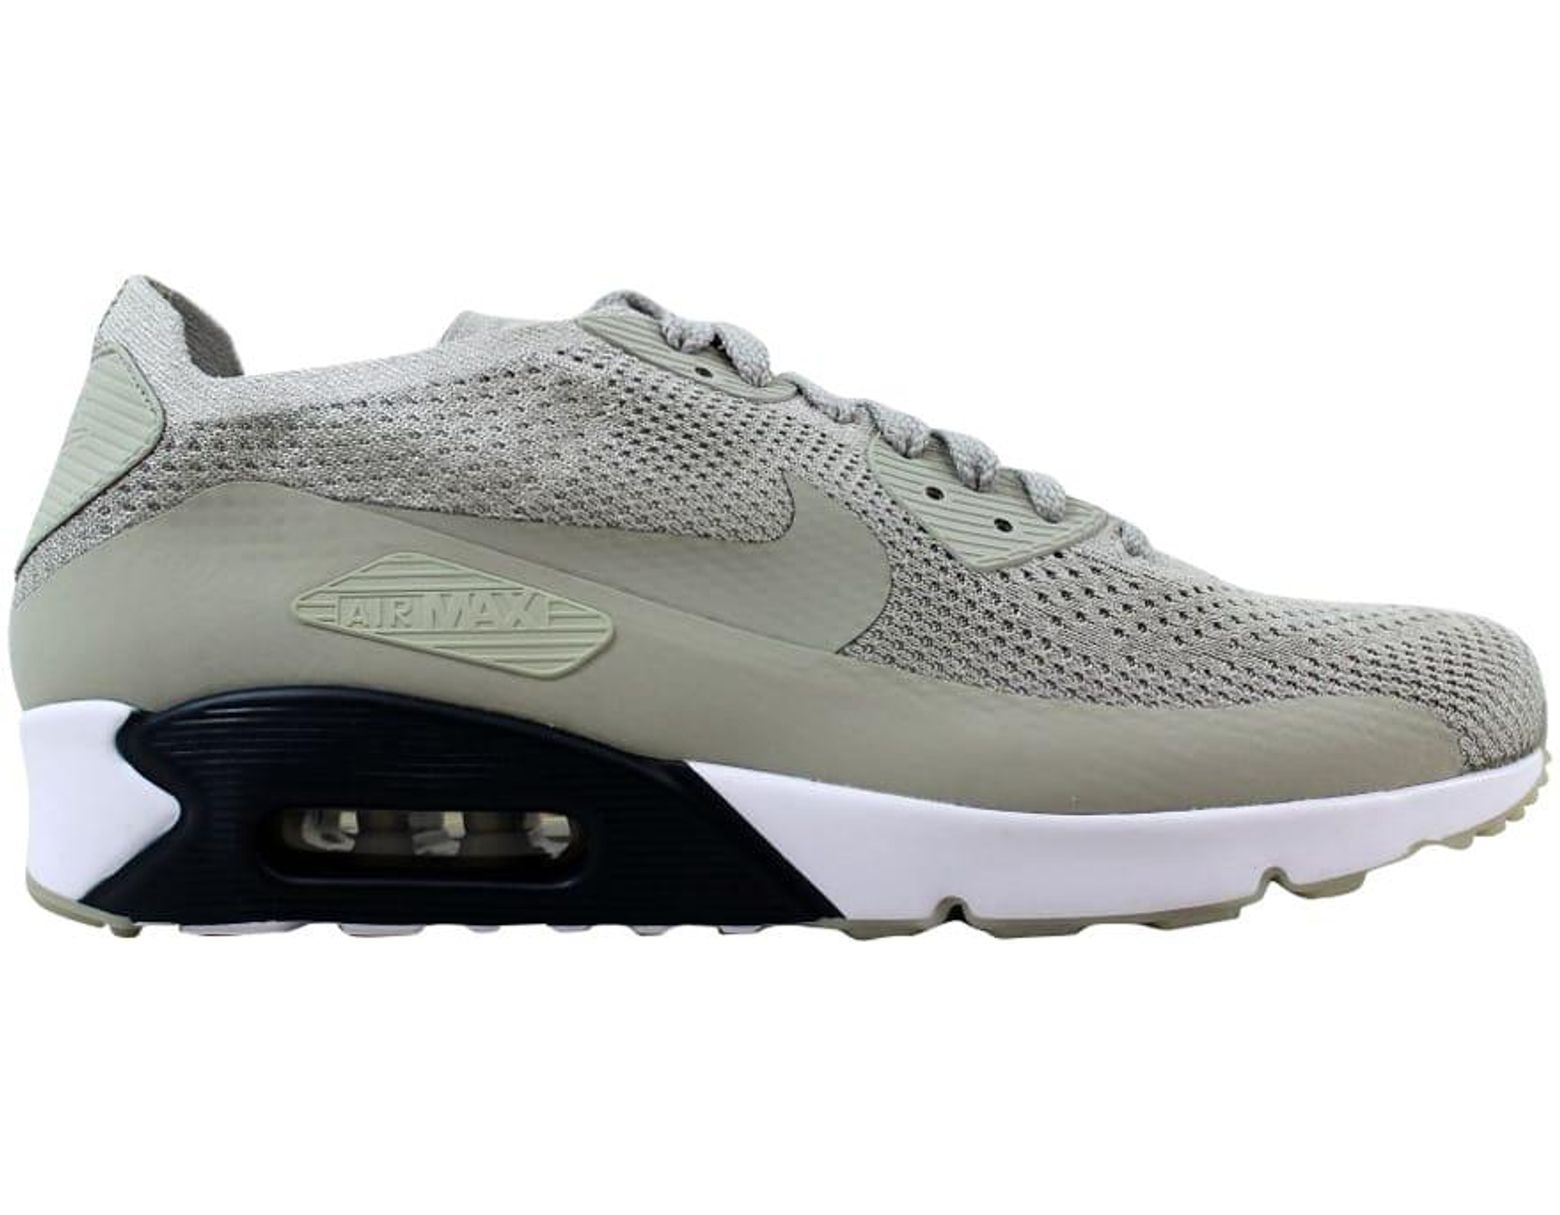 separation shoes d6034 14185 Men's Air Max 90 Ultra 2.0 Flyknit Pale Gray